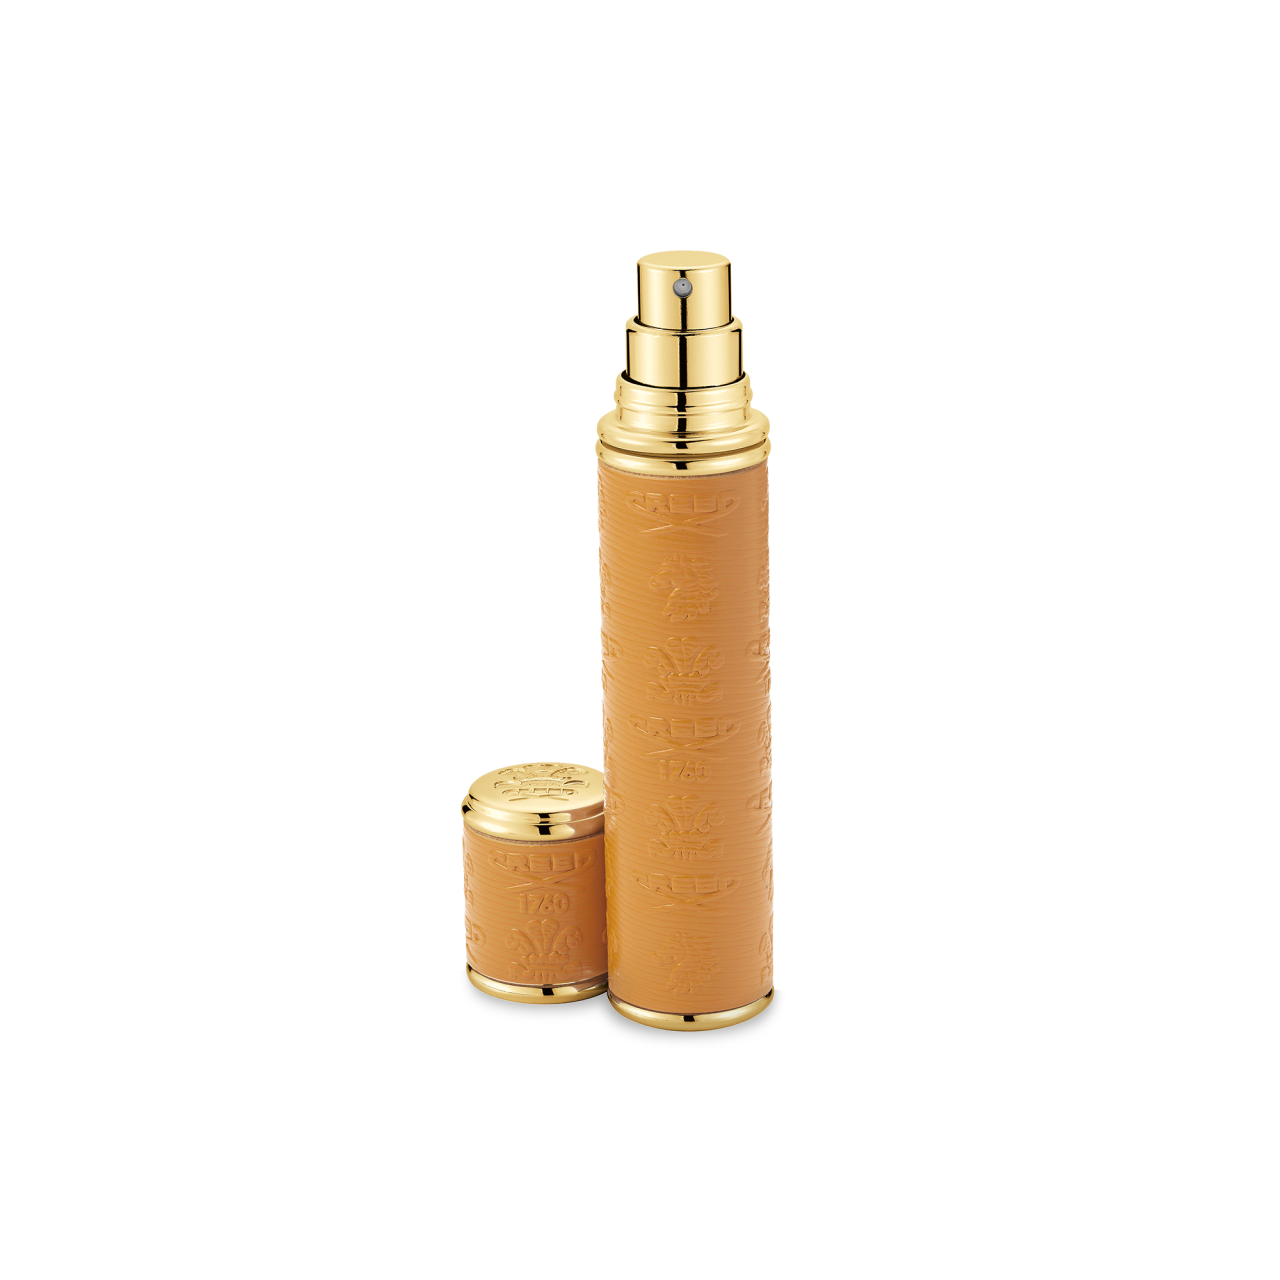 Camel With Gold Trim Pocket Atomizer